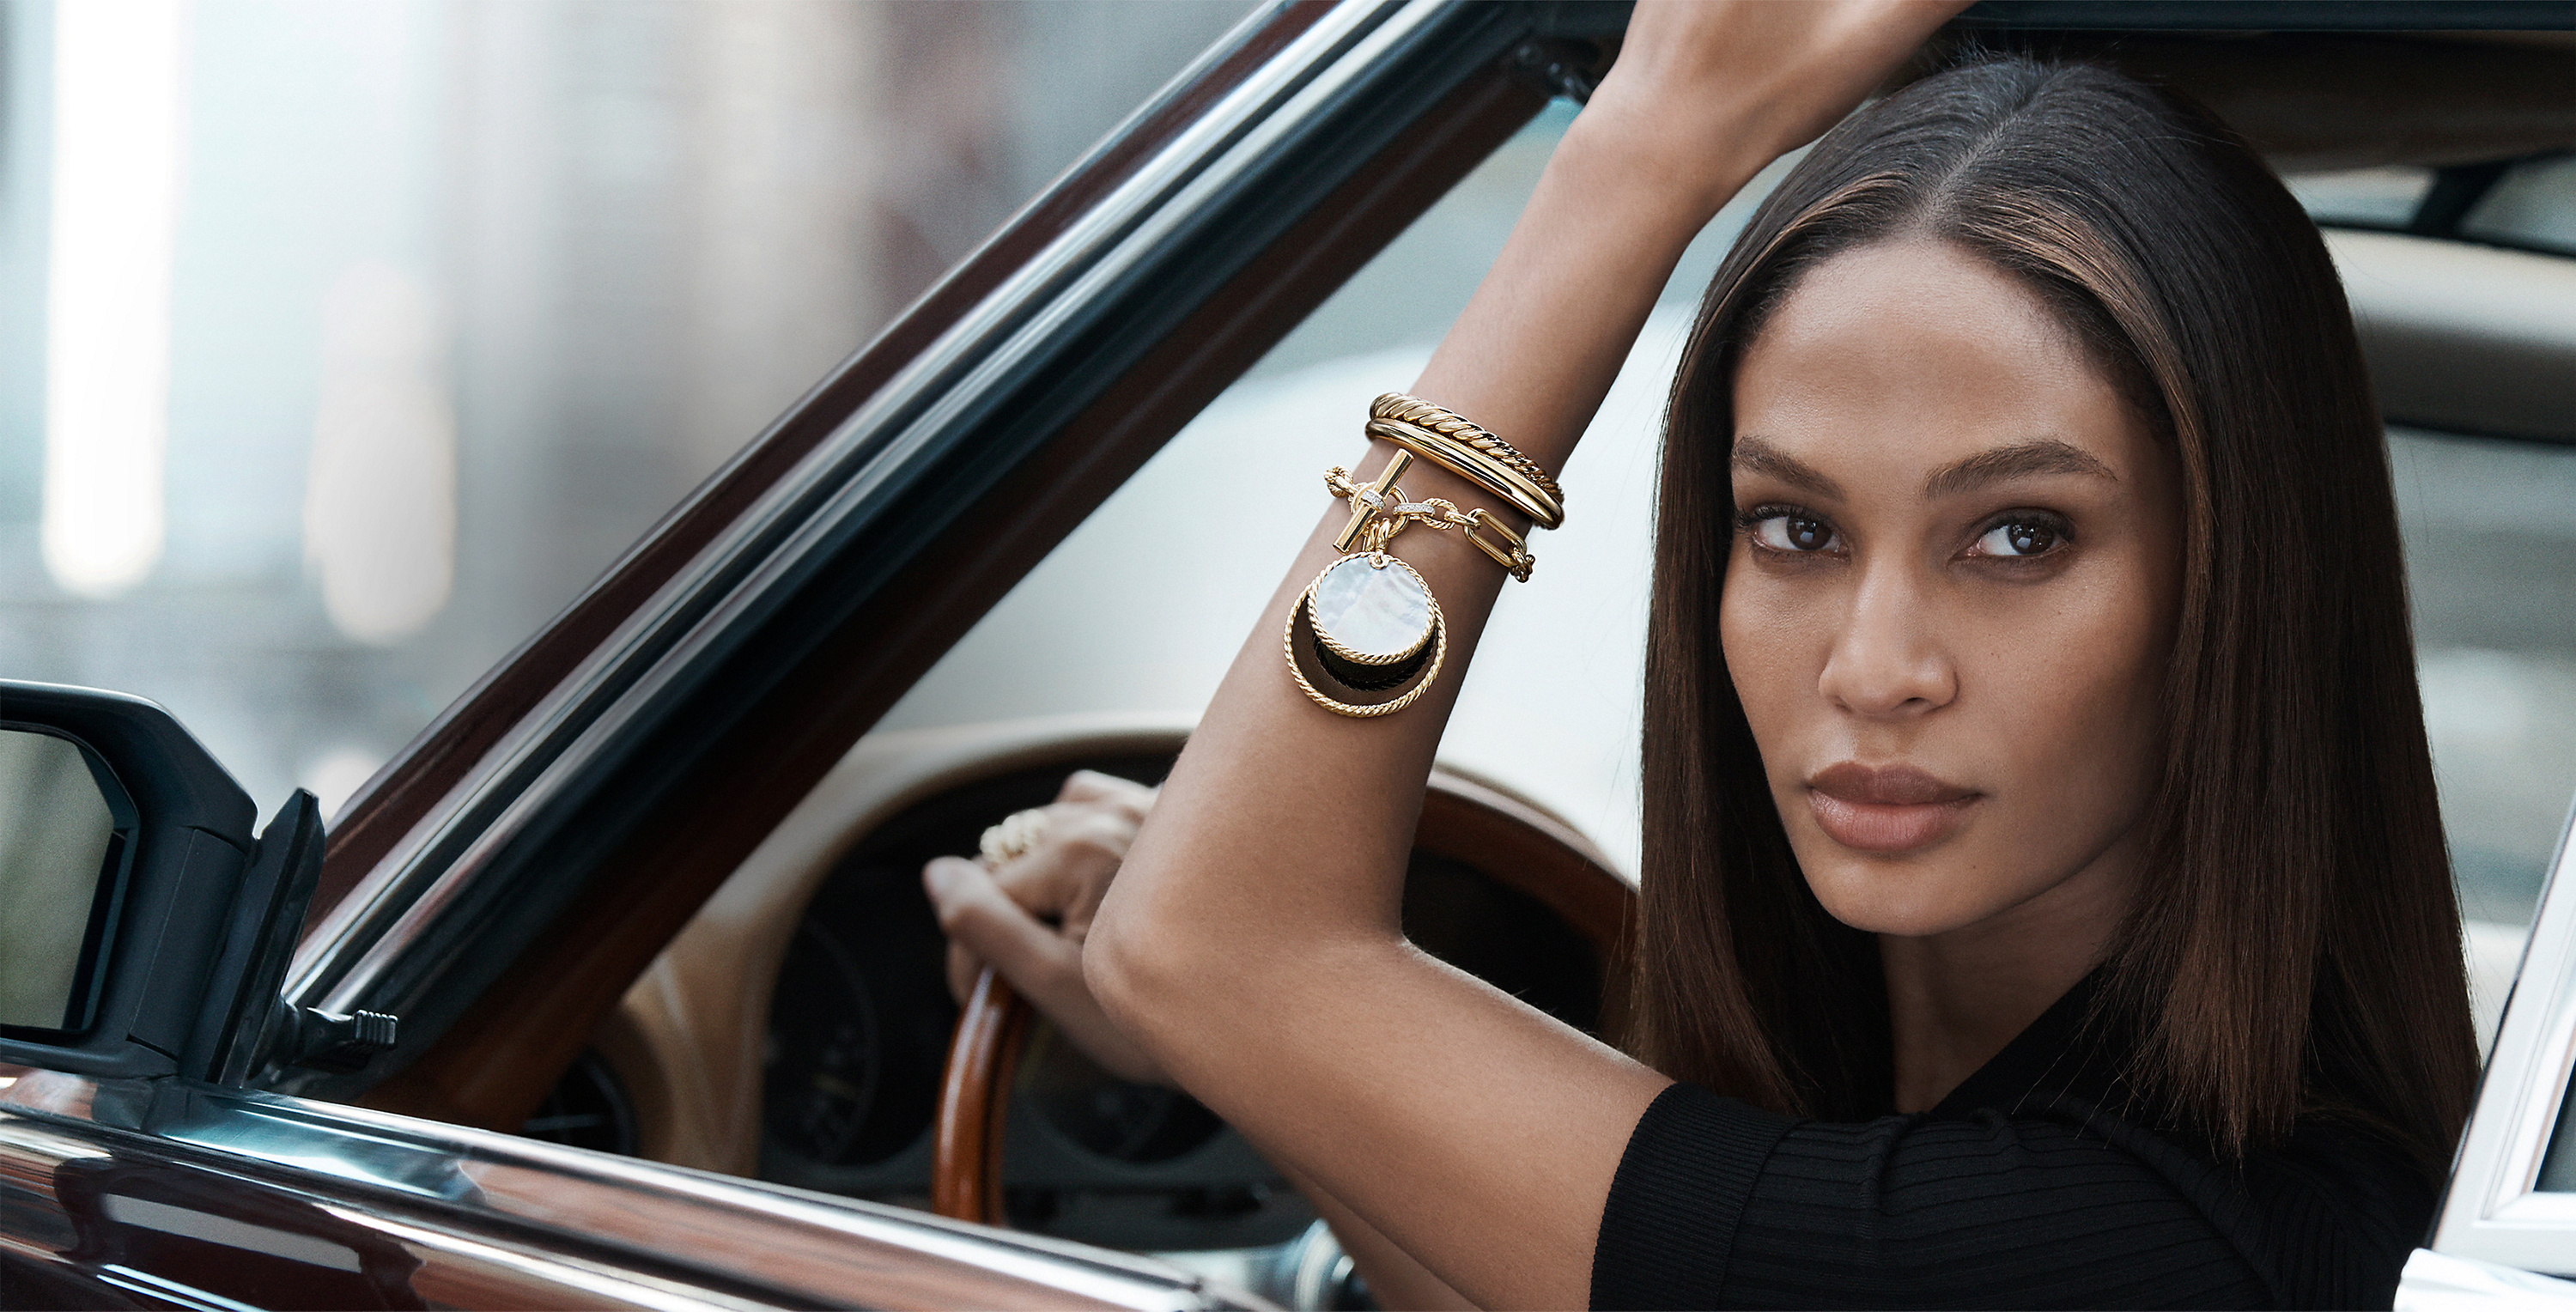 A color photo shows model Joan Smalls from the shoulder up sitting in a car with one arm raised in the window. She's wearing a black top and several David Yurman bracelets with Elements enhancers stacked on one wrist. The jewelry is crafted from 18K yellow gold with or without pavé diamonds, mother-of-pearl or black onyx.